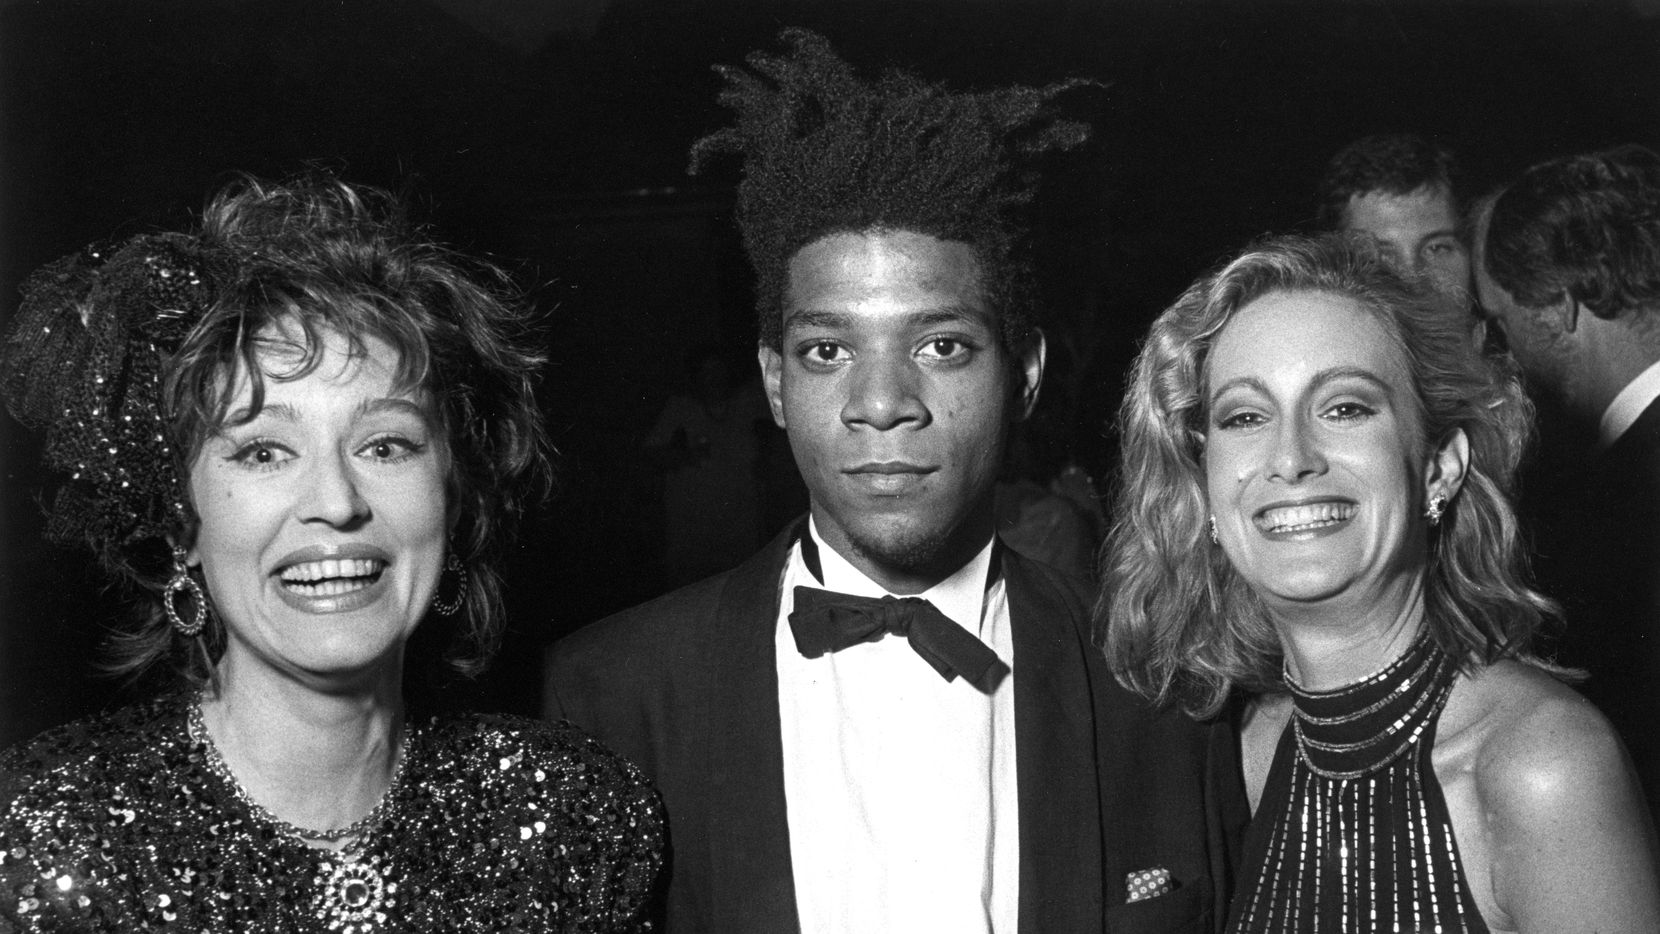 """Jean-Michel Basquiat appears at the opening of the Dallas Museum of Art's """"Primitivism in 20th Century Art"""" show in 1985."""